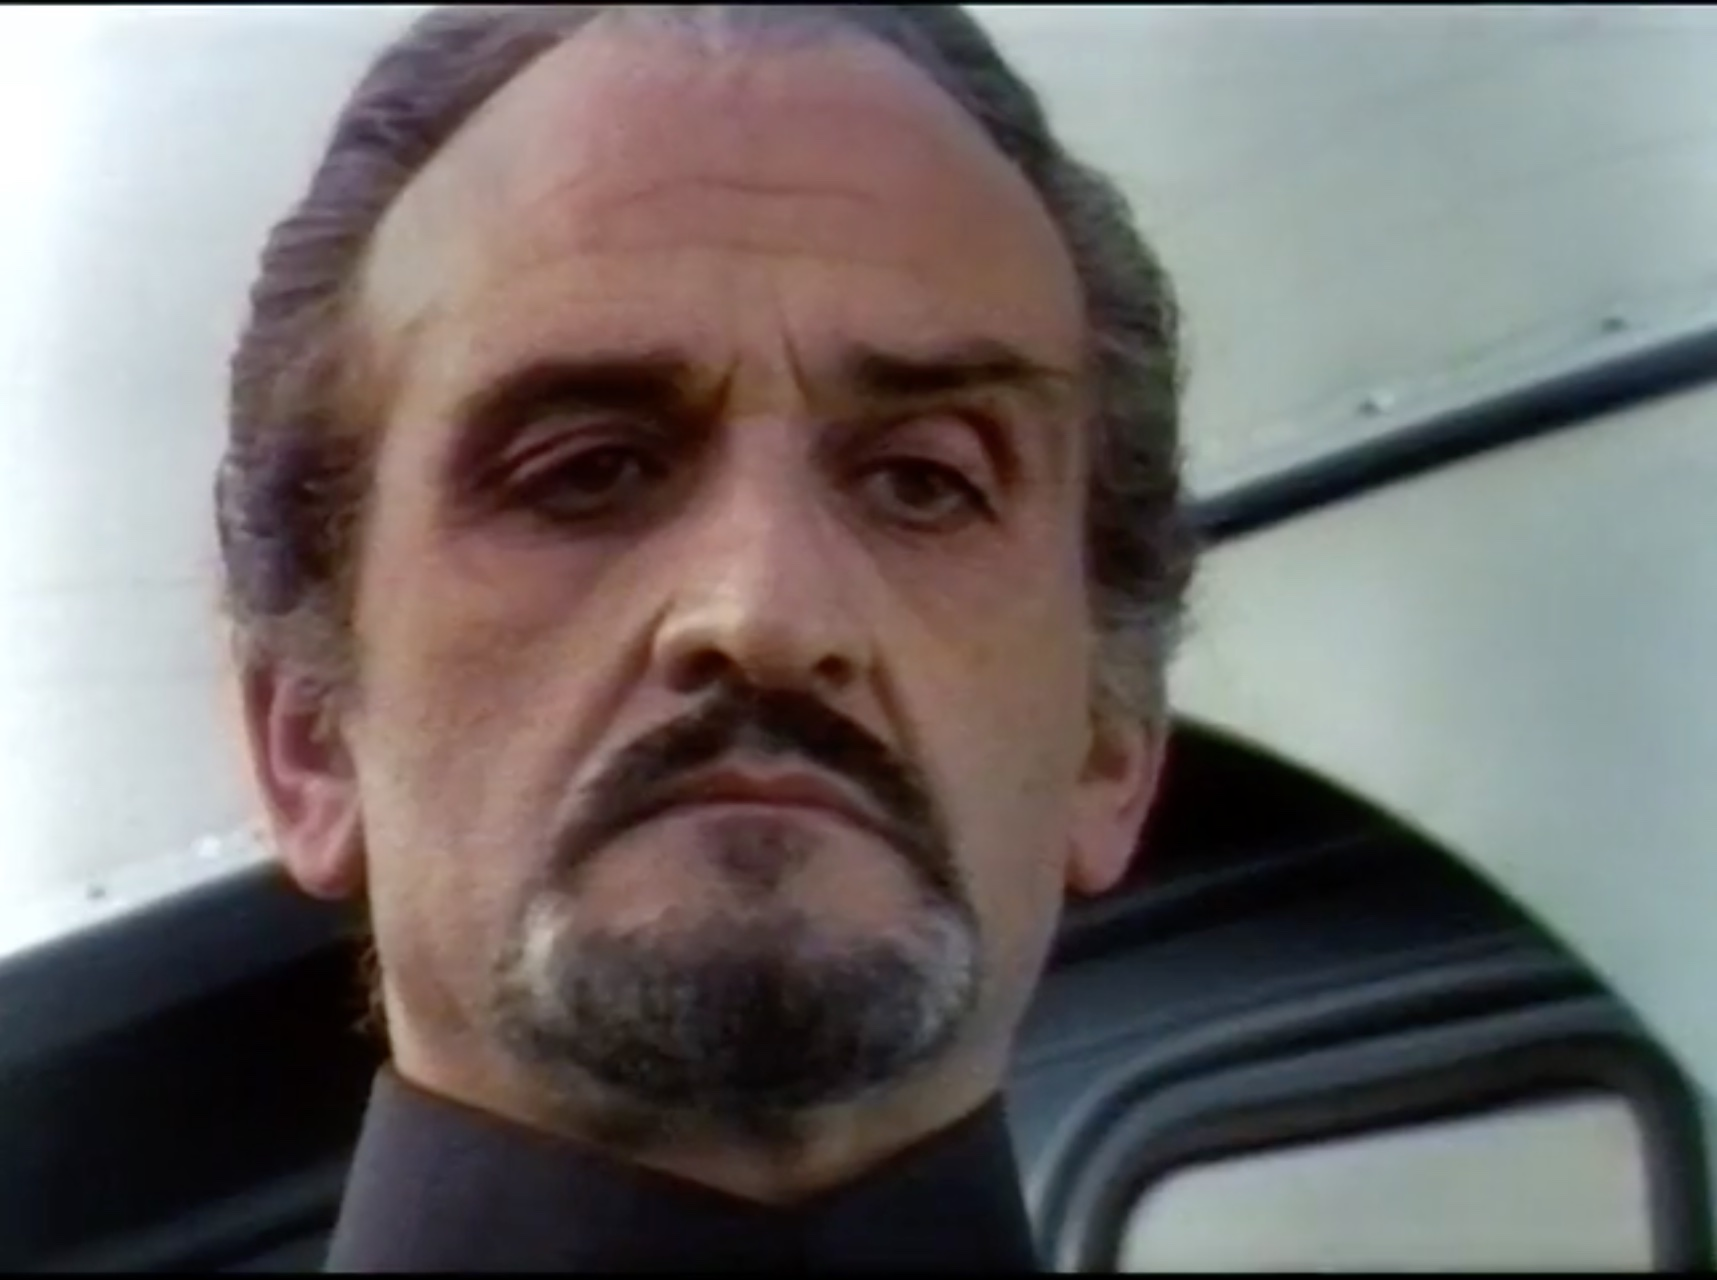 Roger Delgado's first appearance as The Master